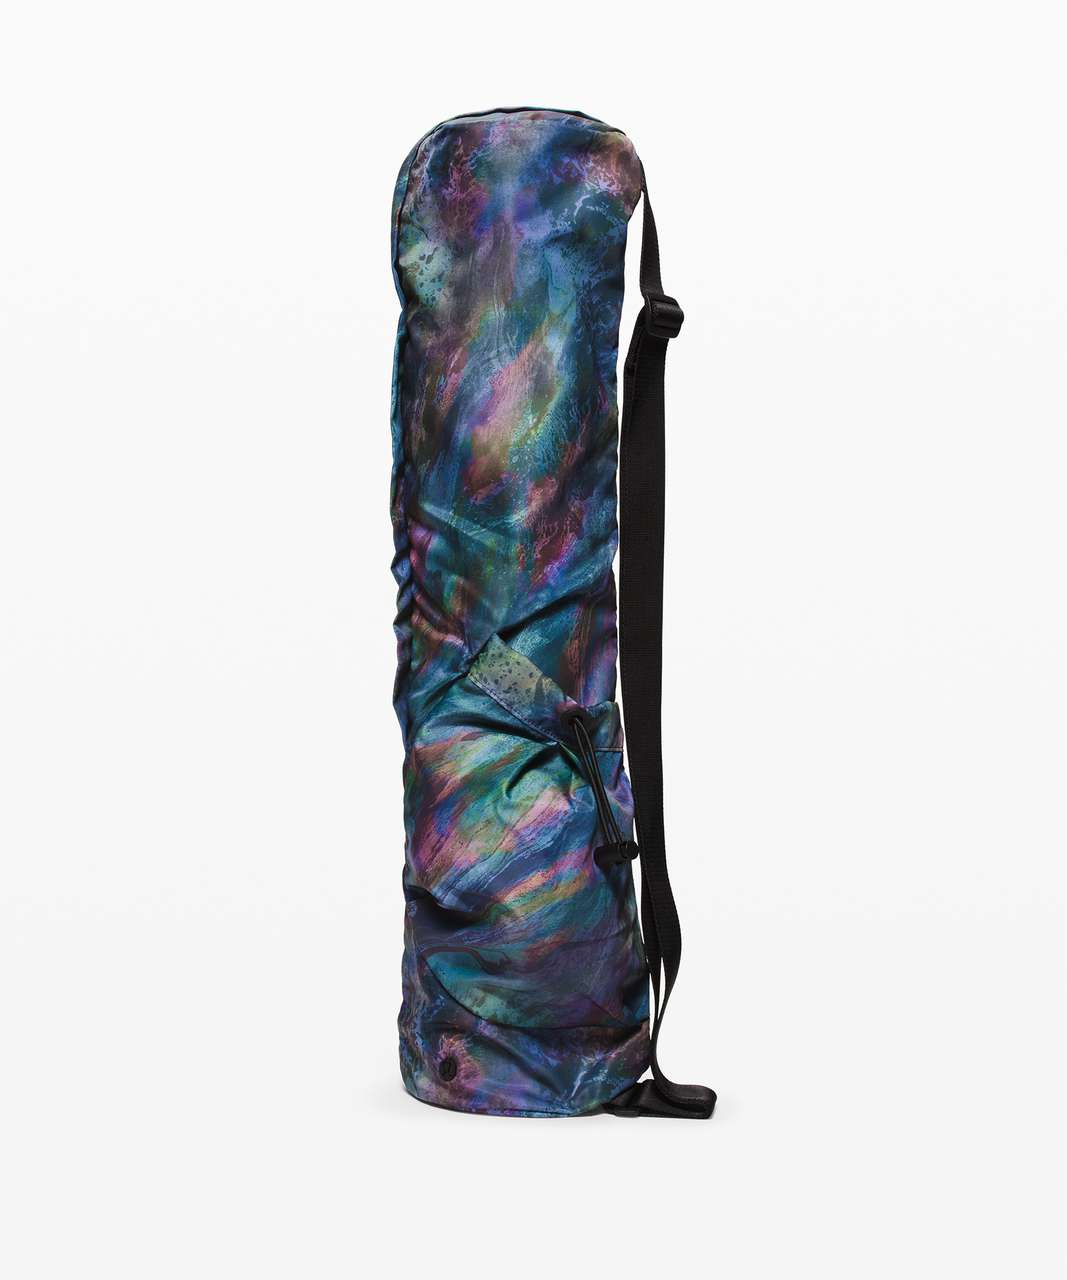 Lululemon The Yoga Mat Bag *16L - Cosmic Shift Multi